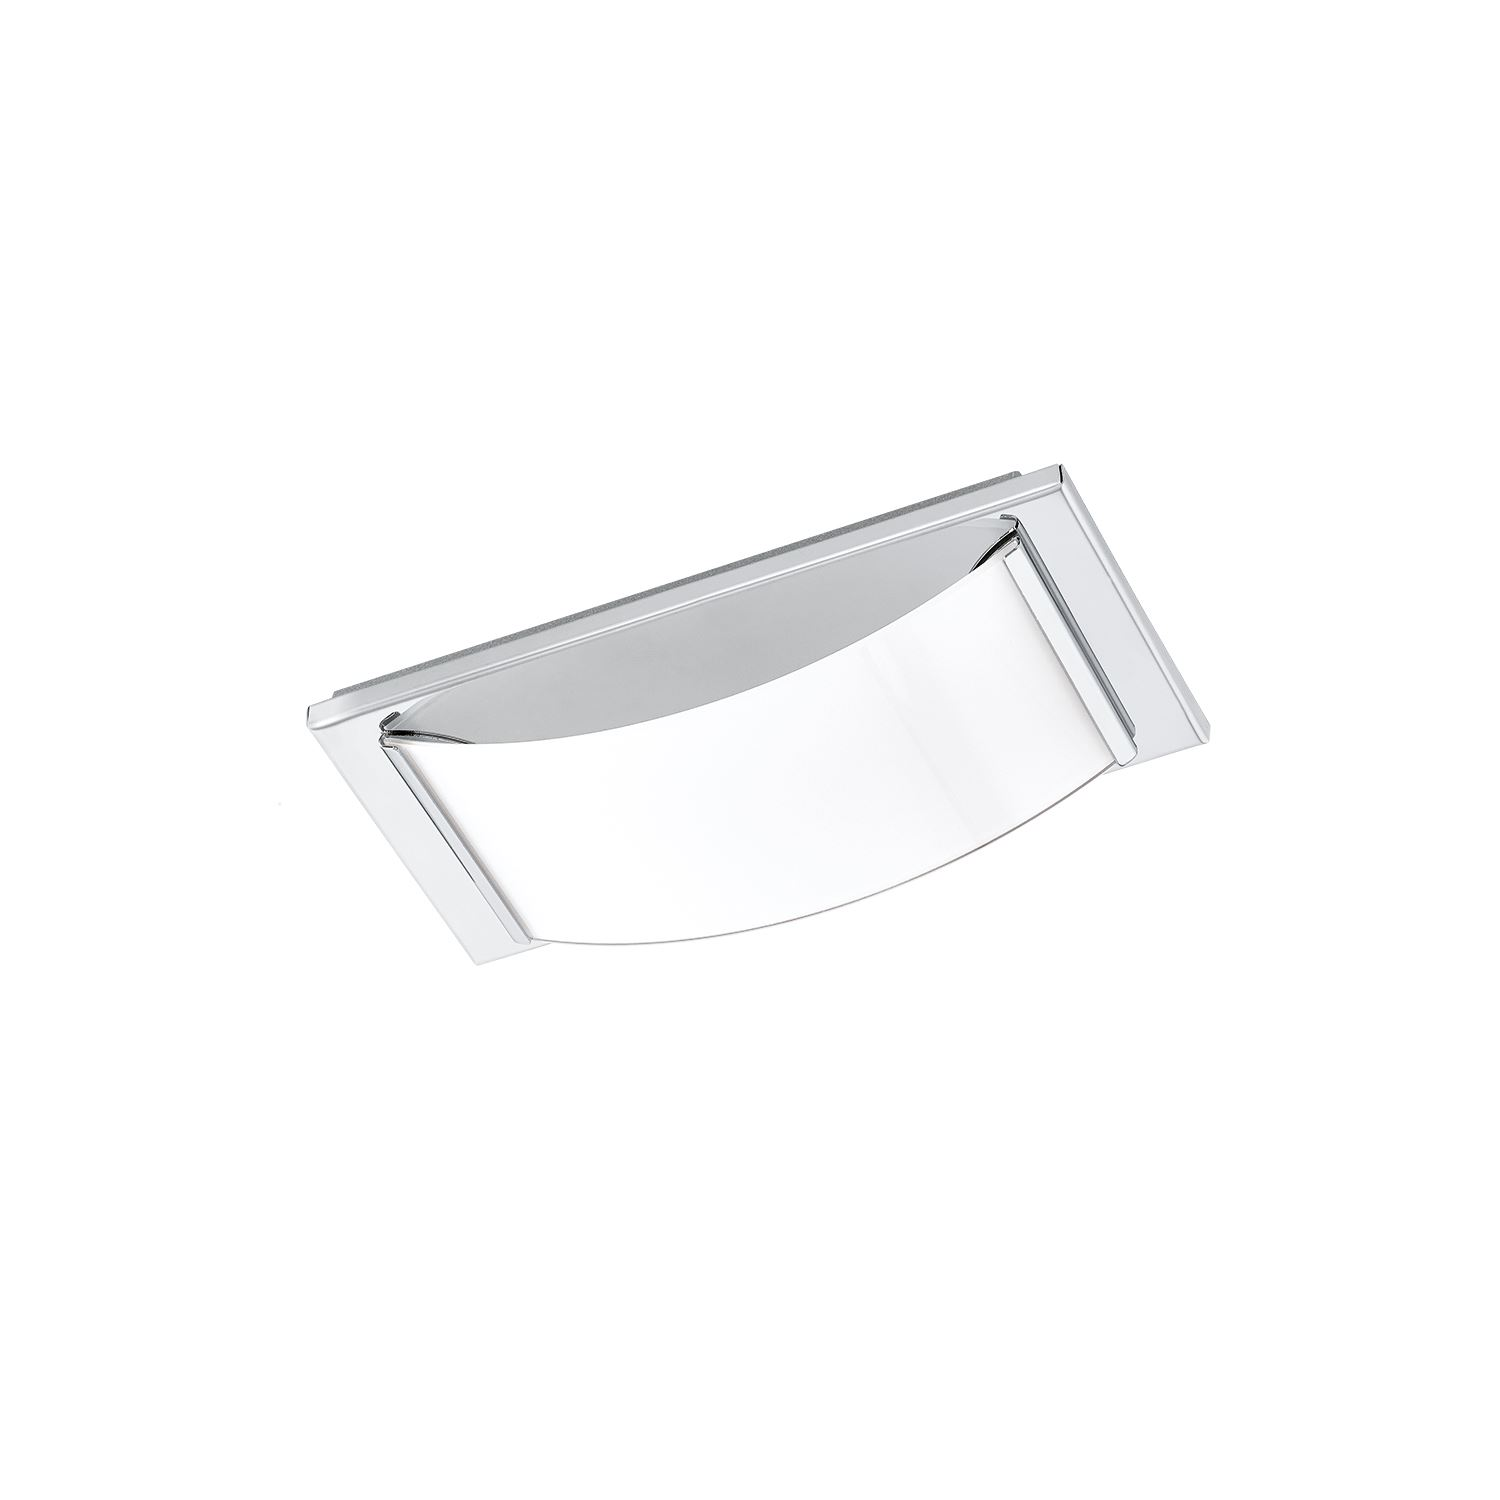 Wasao LED Wall/Ceiling Light 1x 5,4W Stainless Steel Chrome